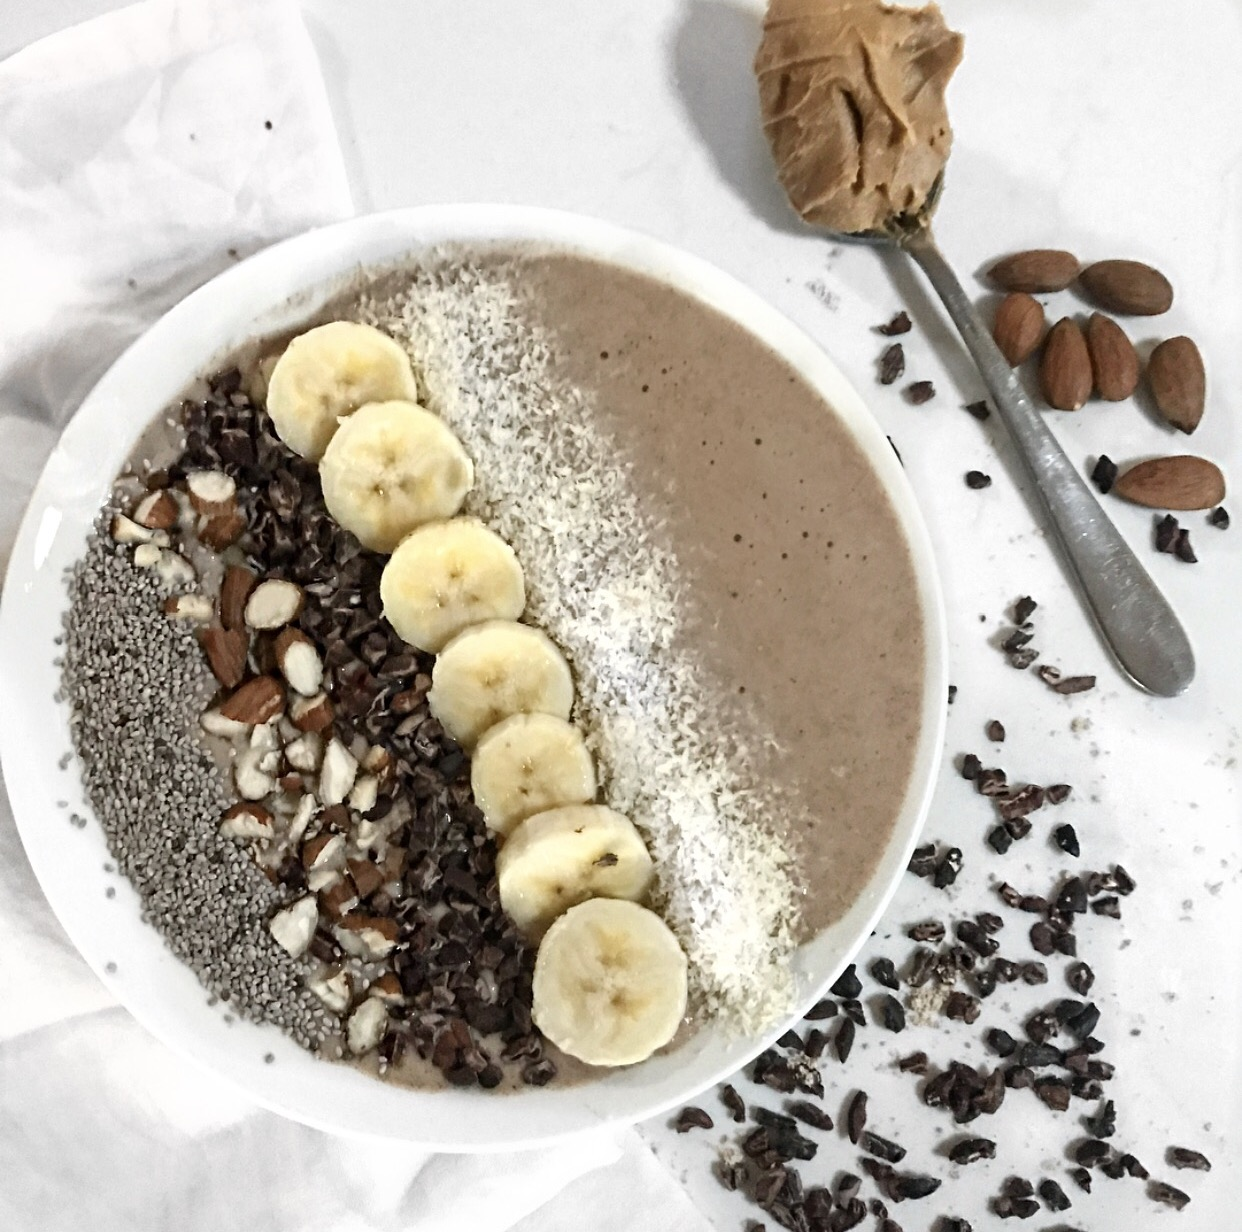 Peanut Butter Choc Protein Smoothie Bowl